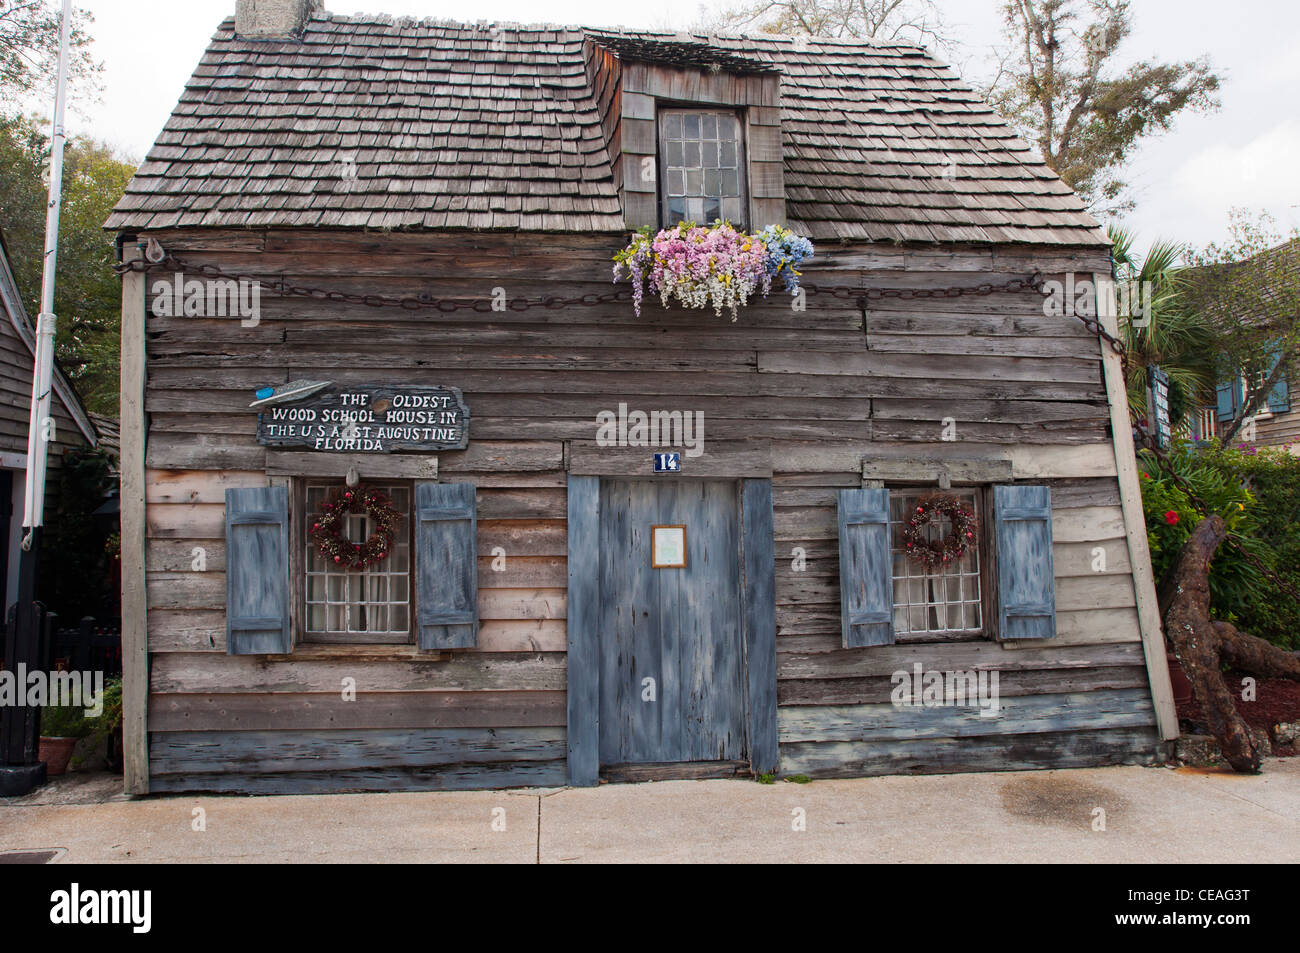 The Oldest Wood School House In The Usa St George Street